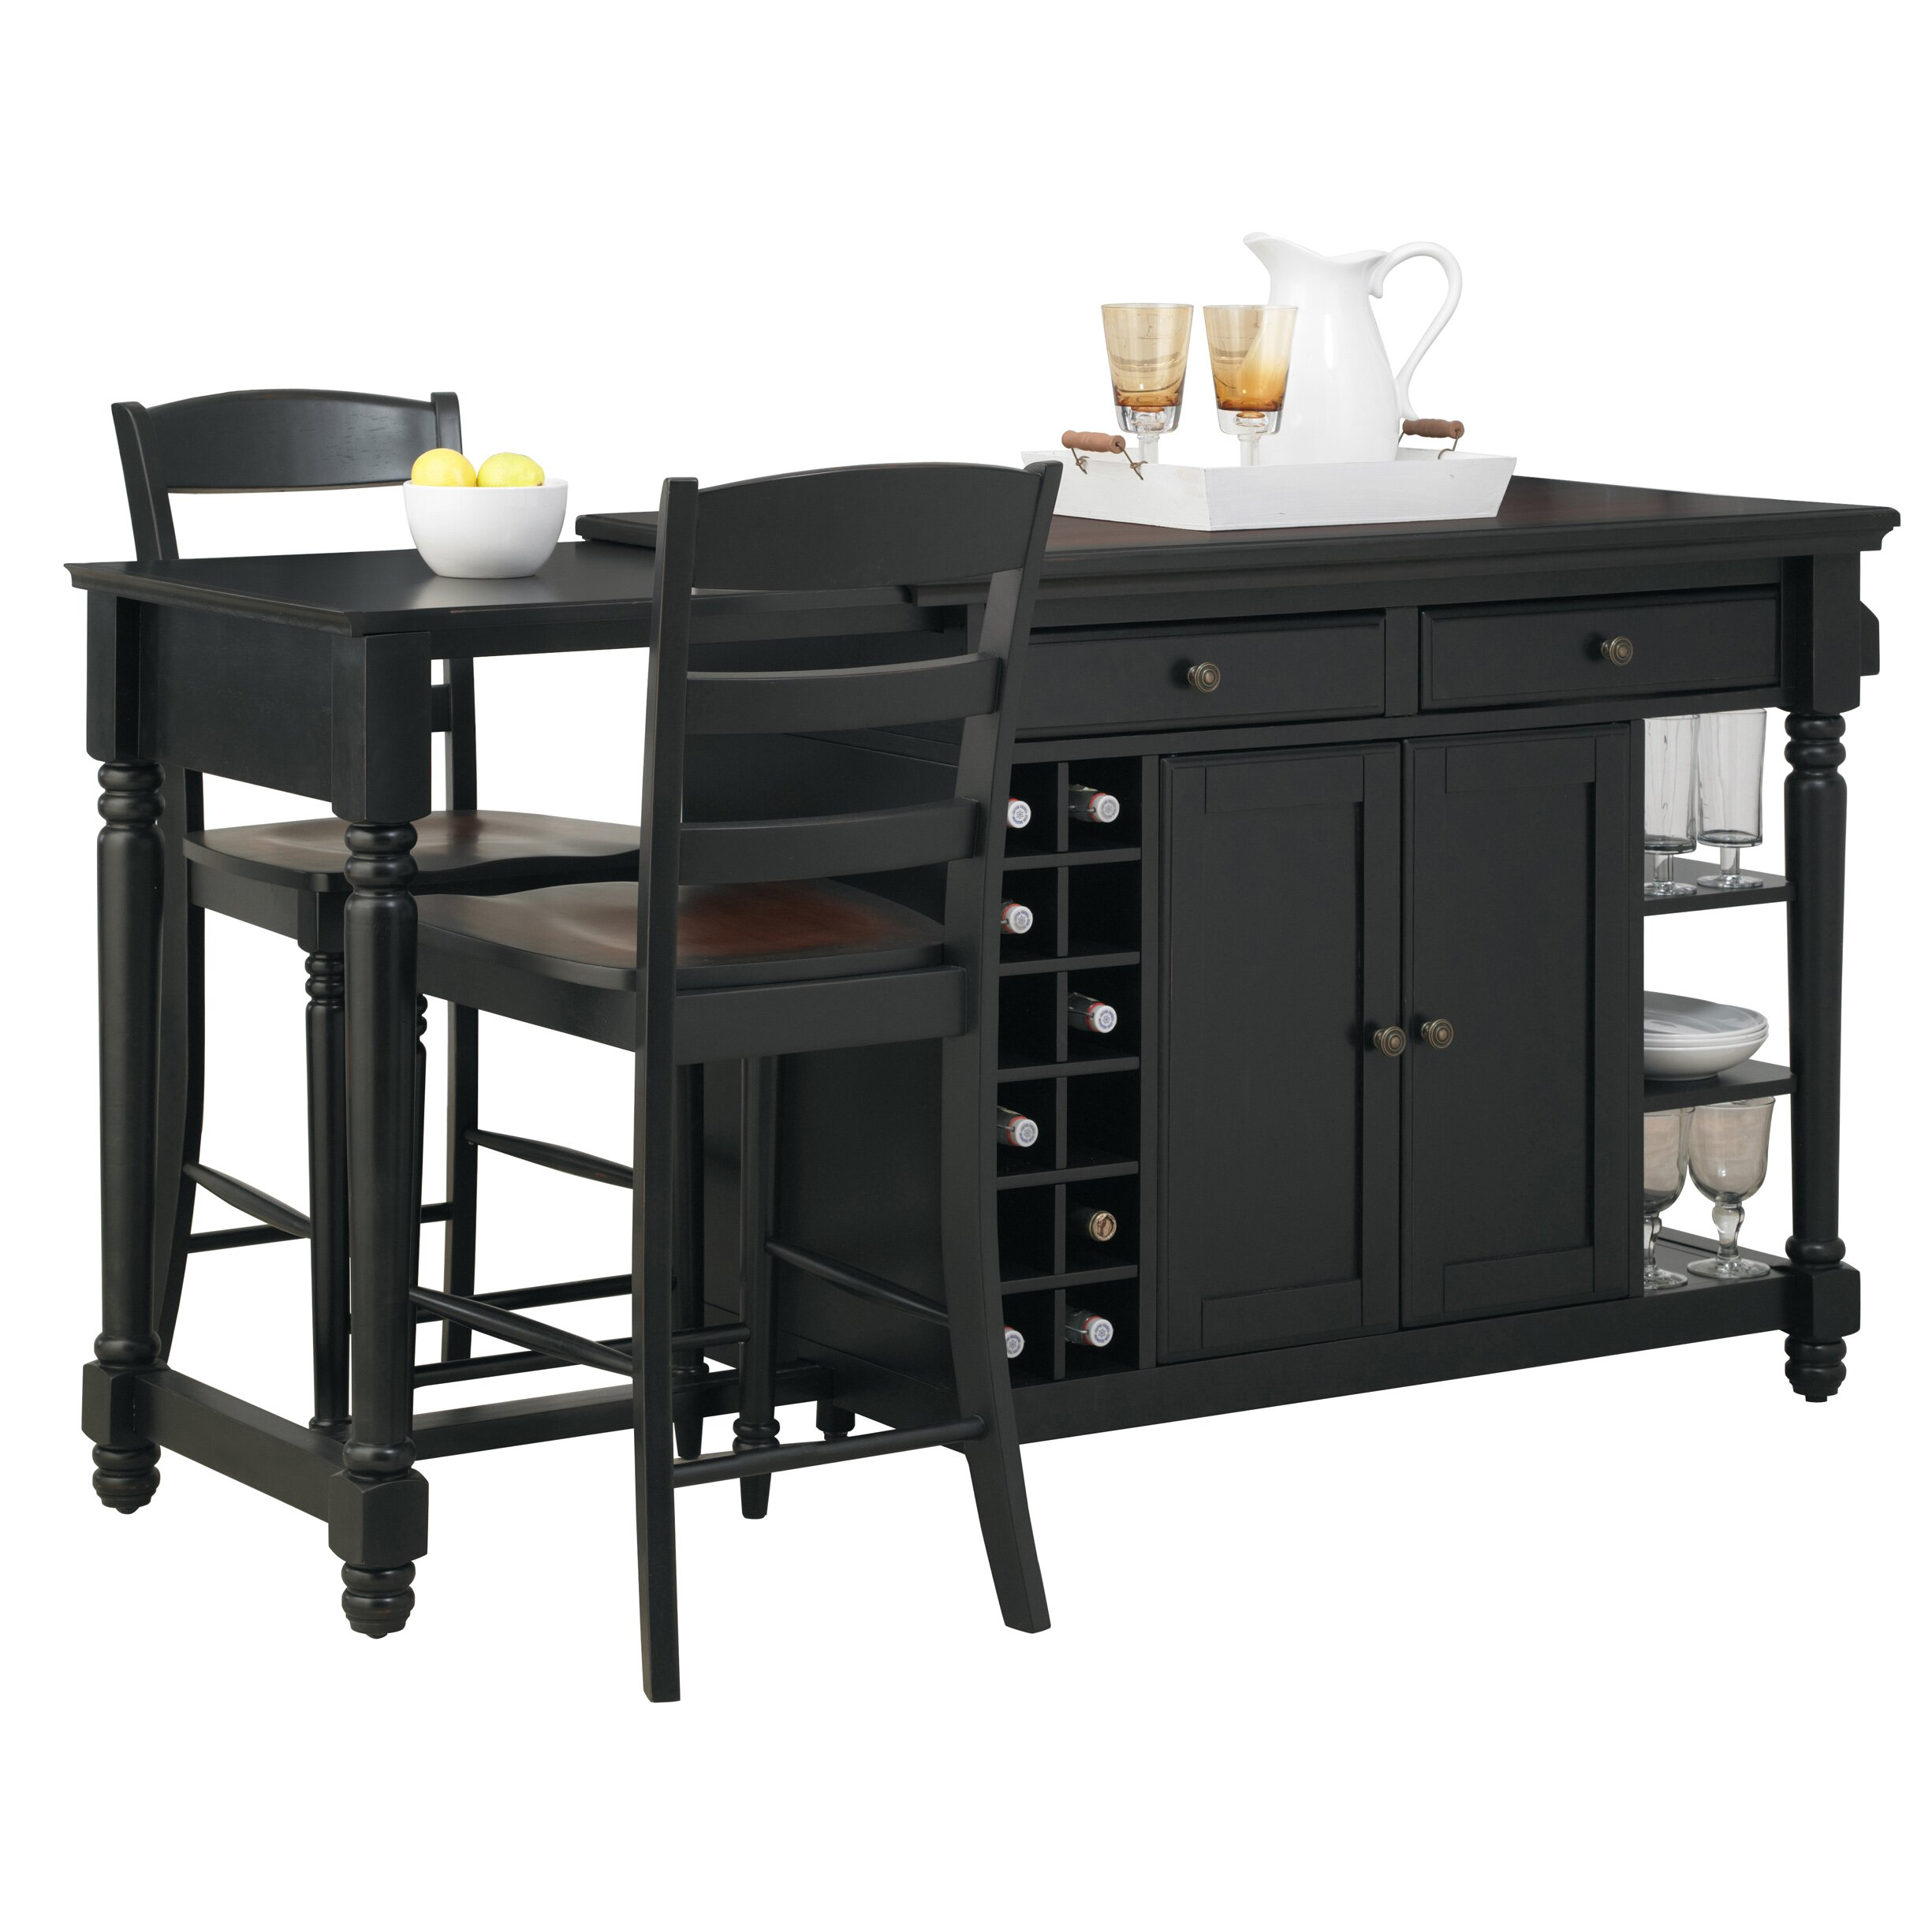 Darby Home Co Cleanhill Kitchen Island Reviews Wayfair